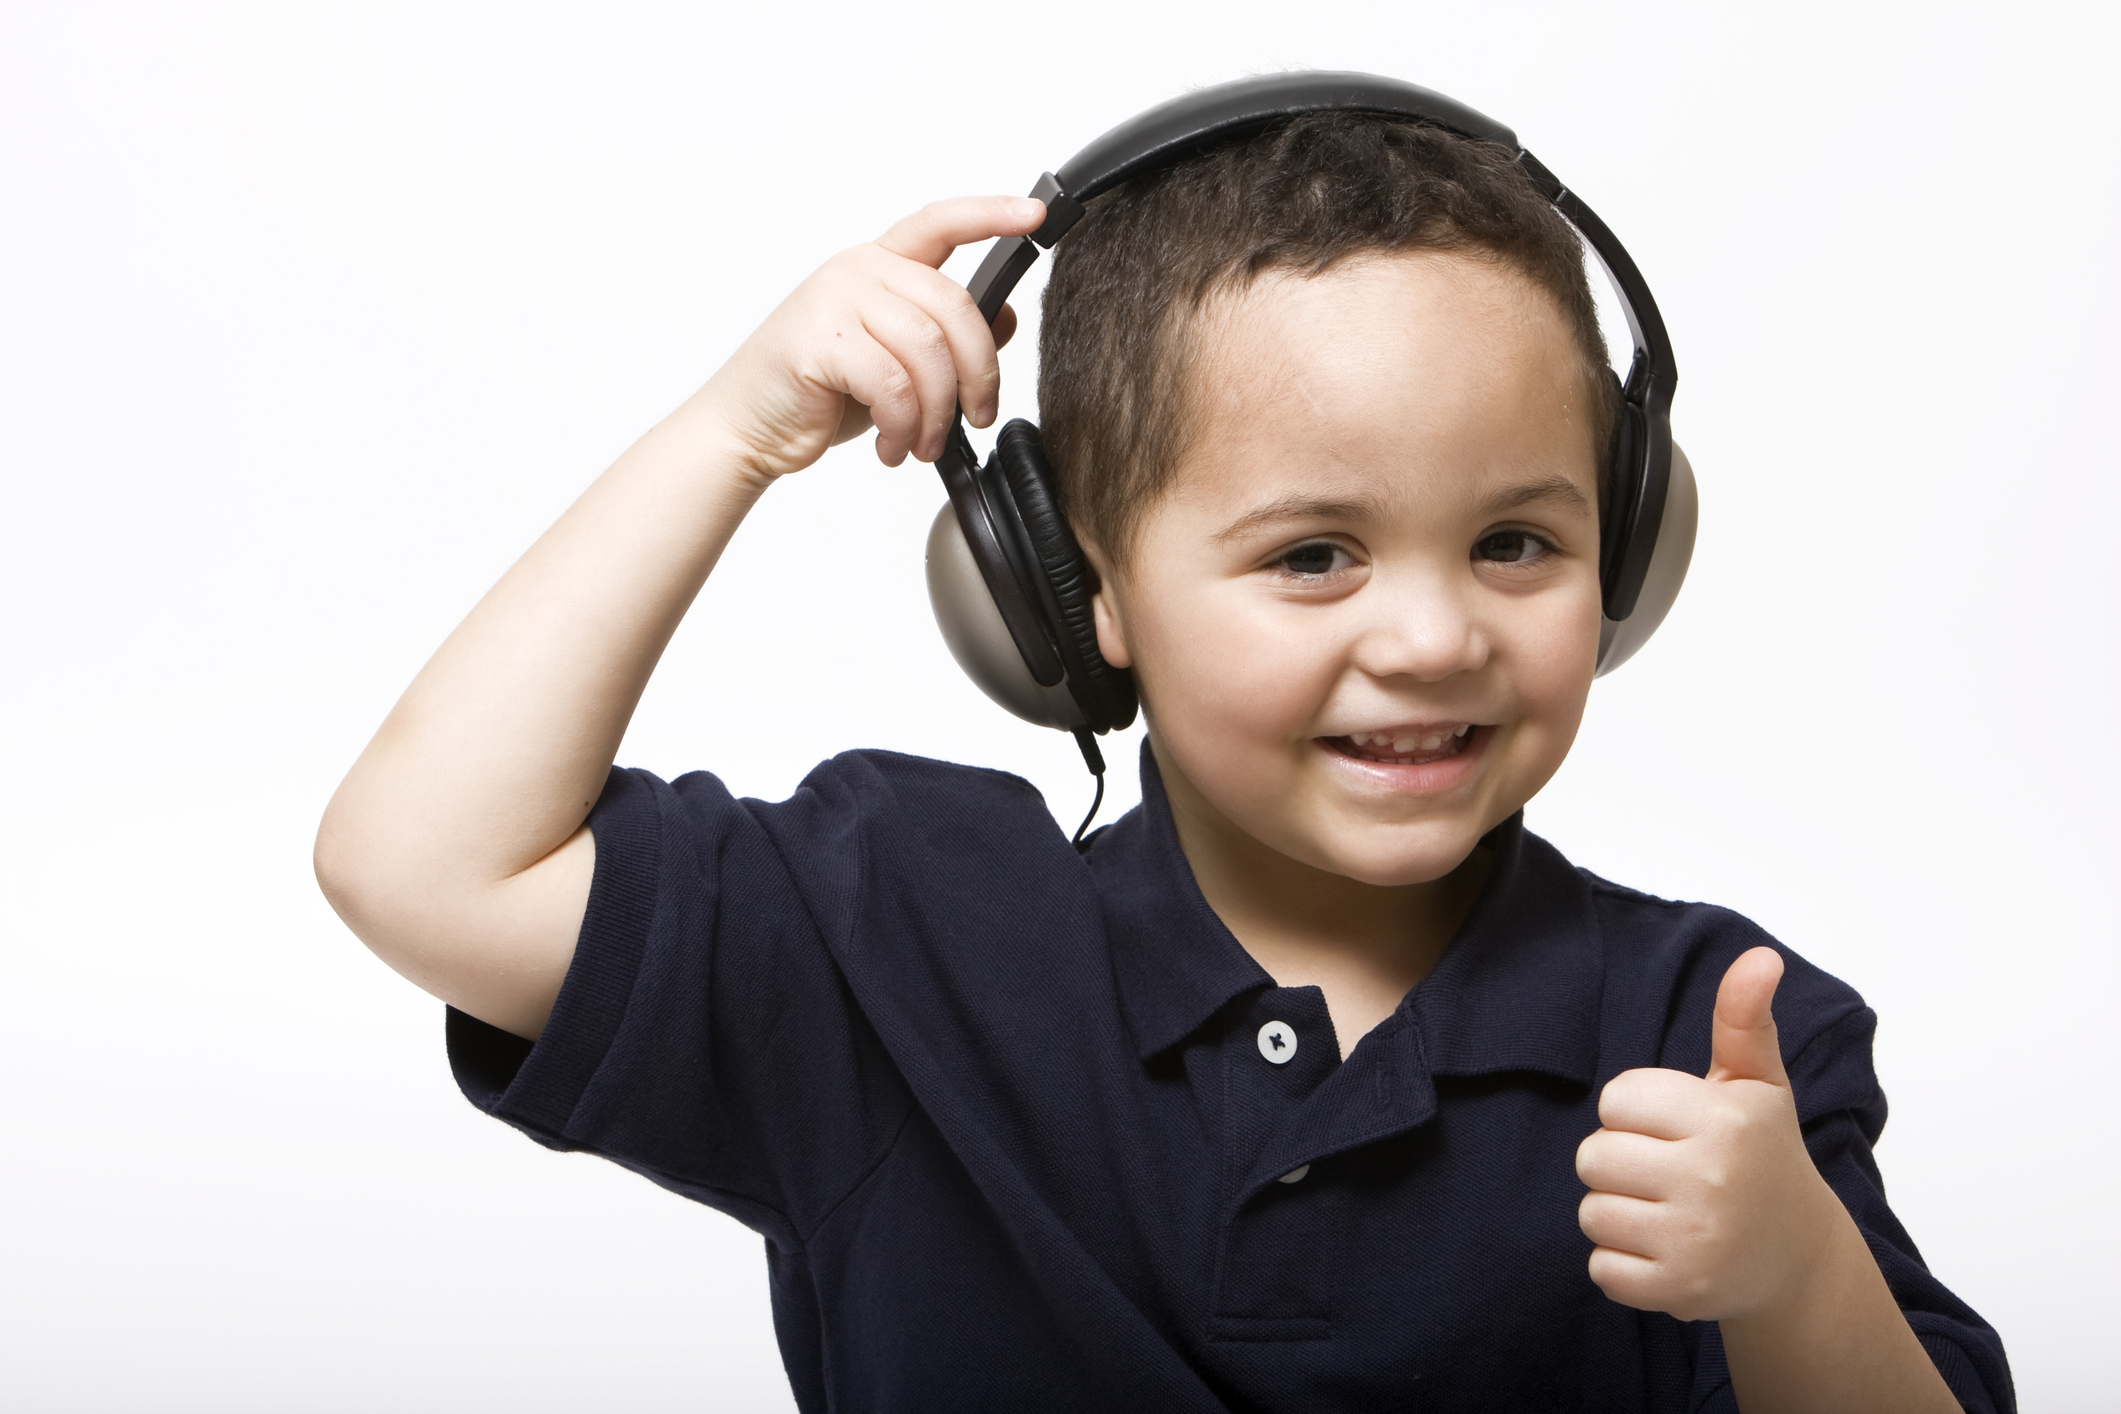 Young boy removing headphones giving thumbs up sign